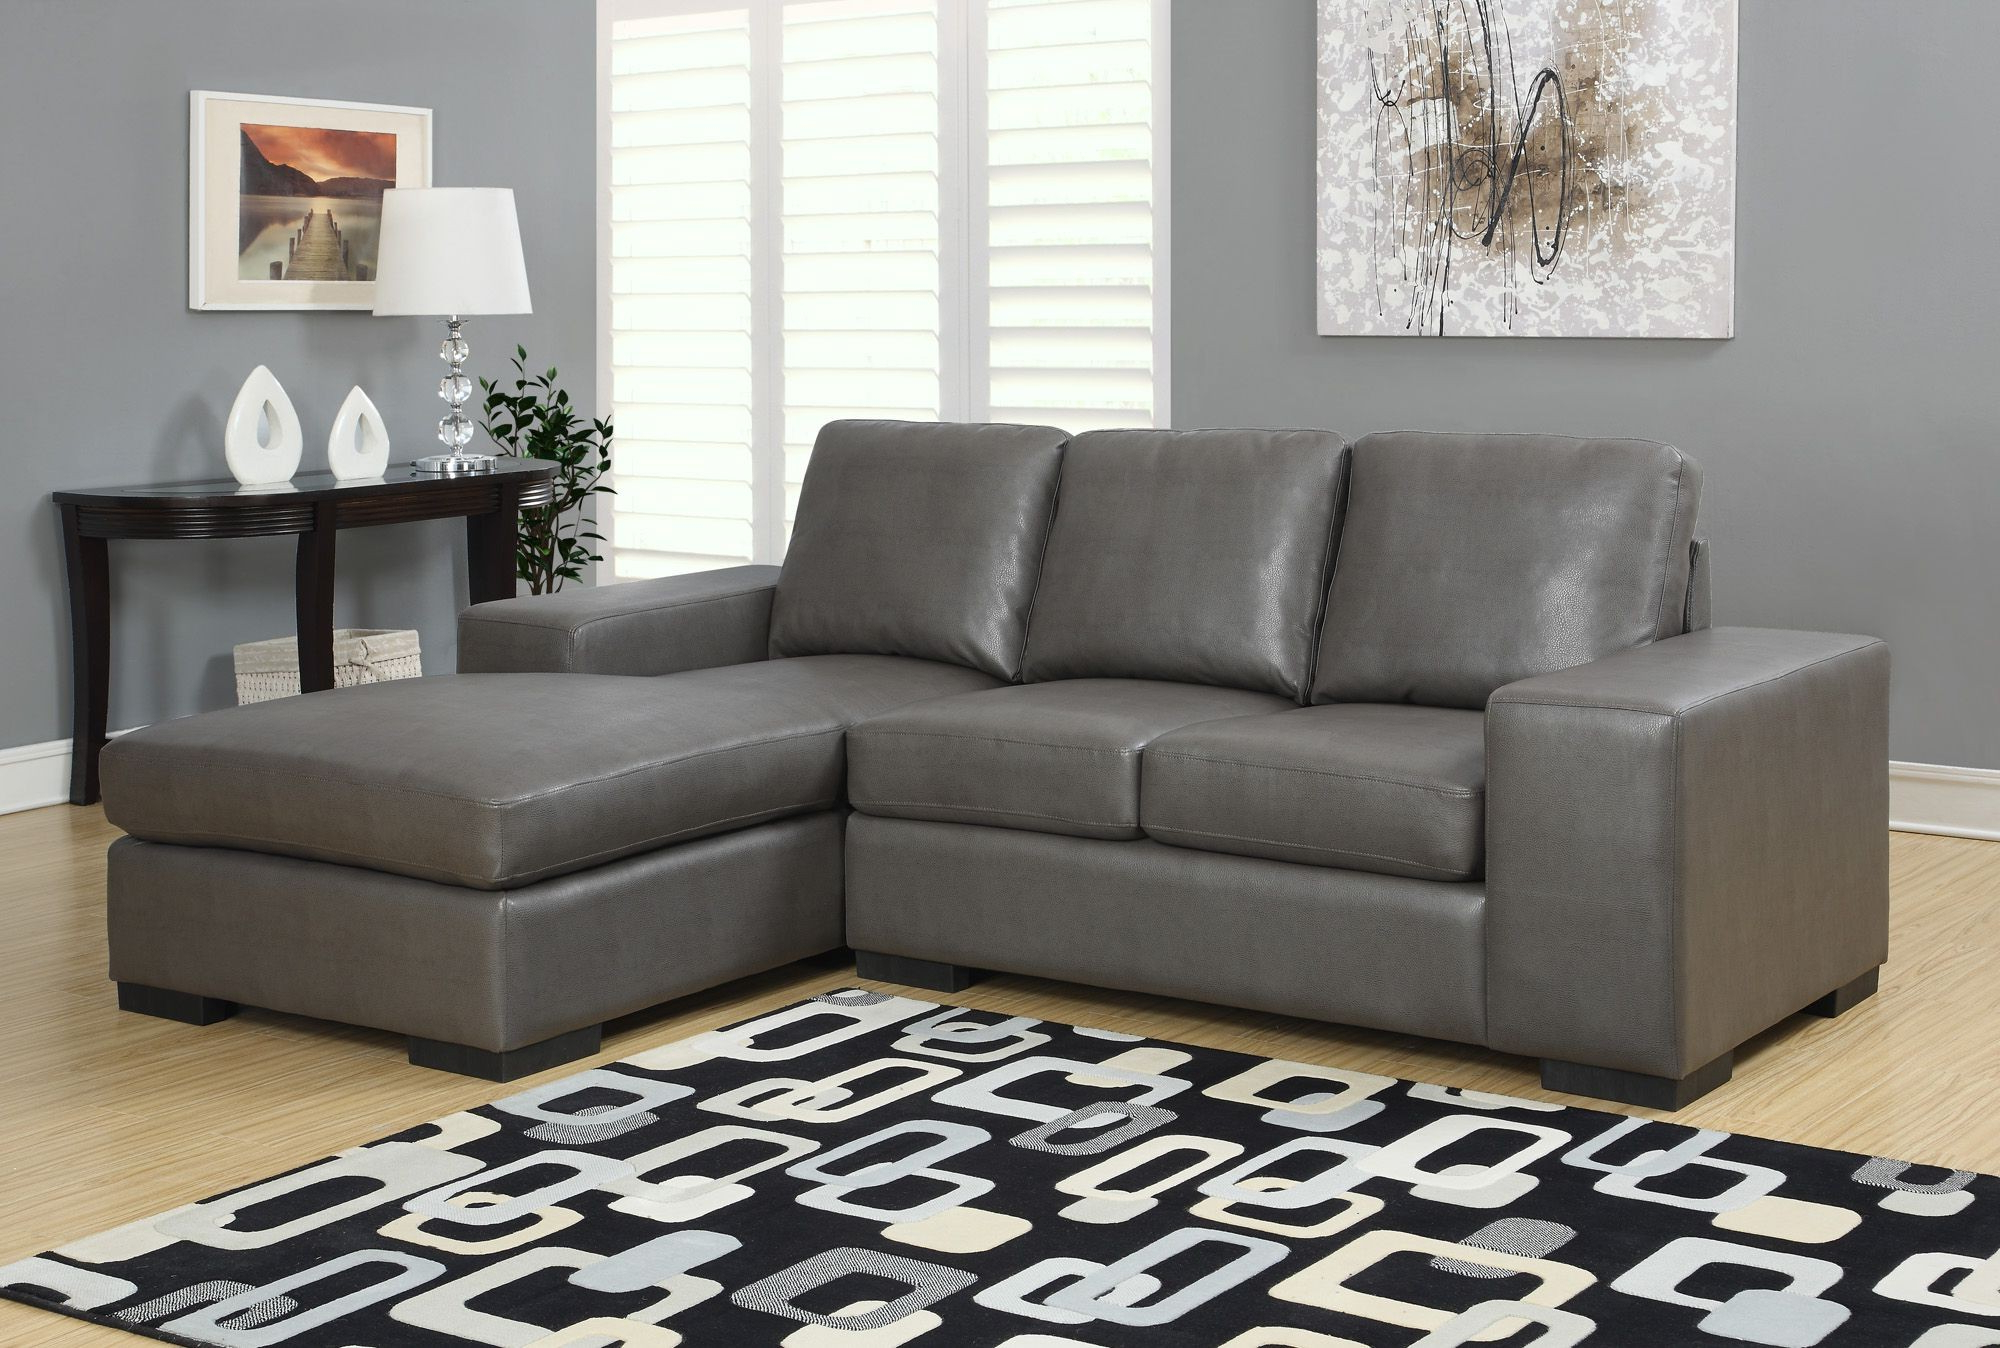 2019 Charcoal Gray Bonded Leather/match Sofa Sectional From Intended For Sectional Sofas In Gray (View 7 of 20)